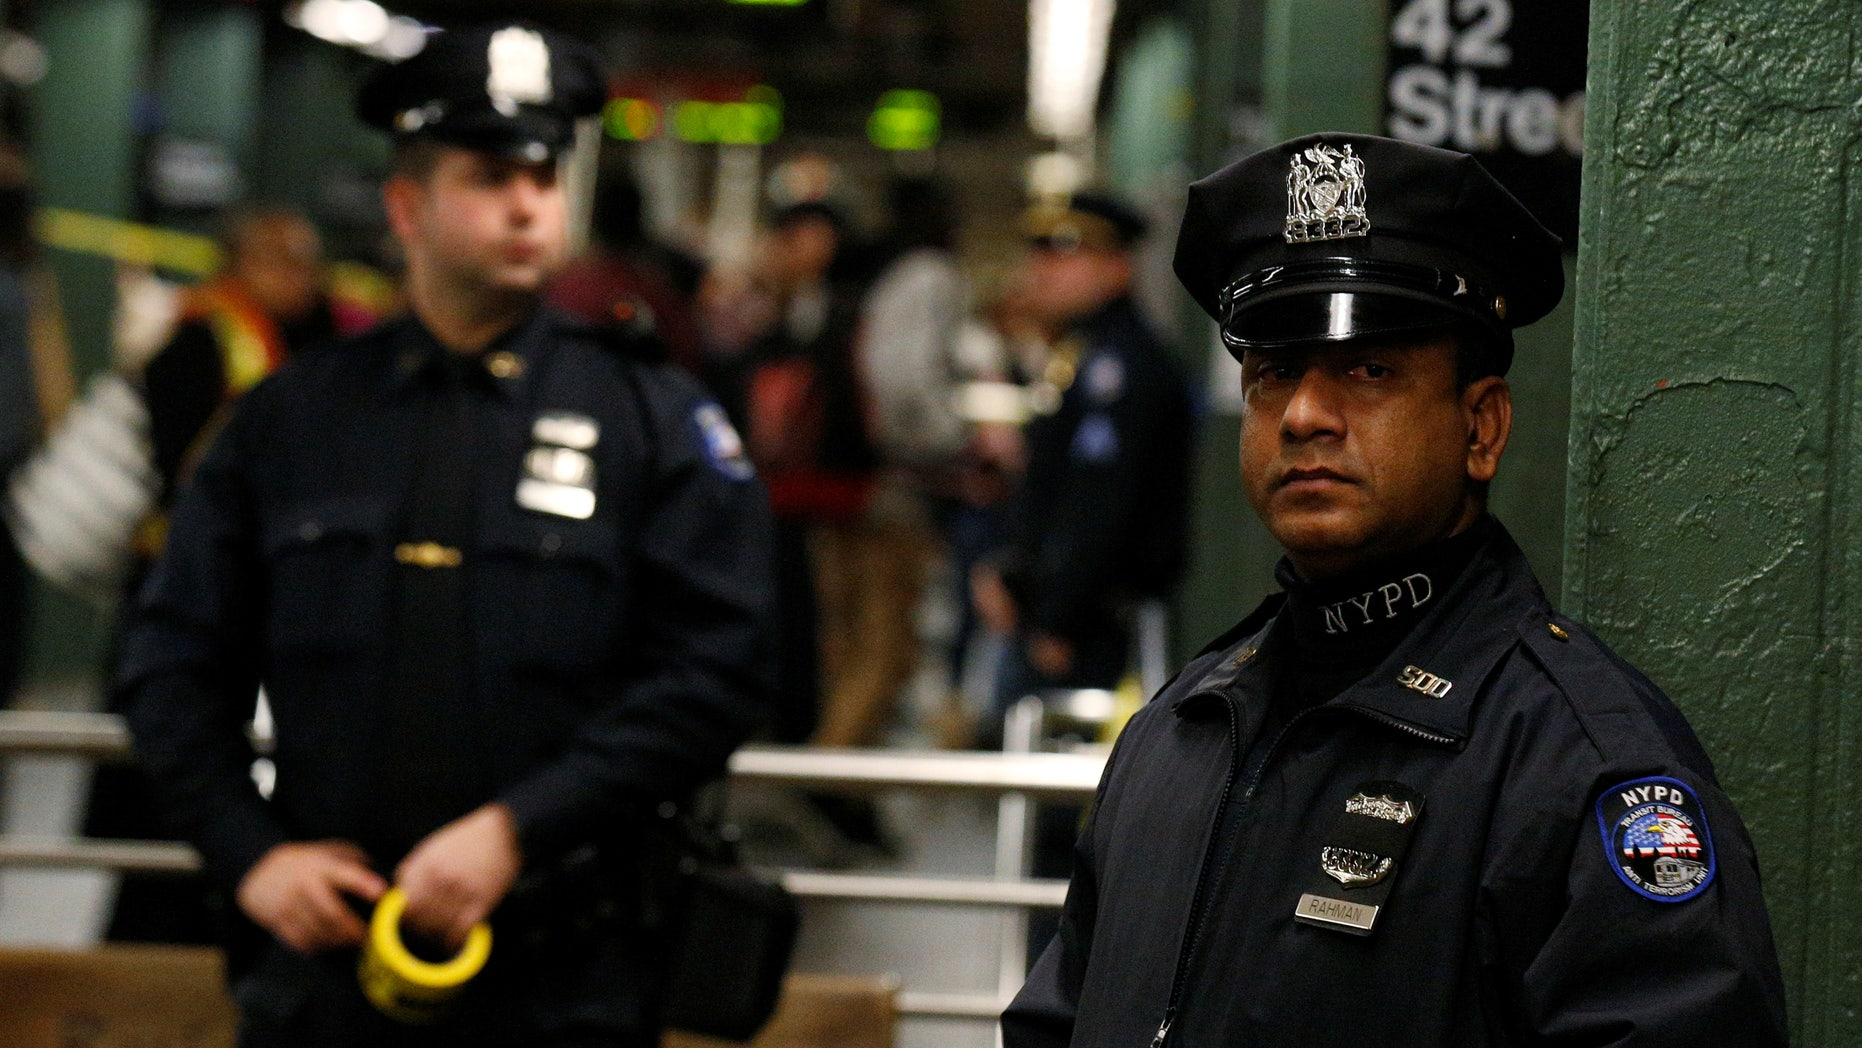 New York City police at the subway station in Times Square on Monday.